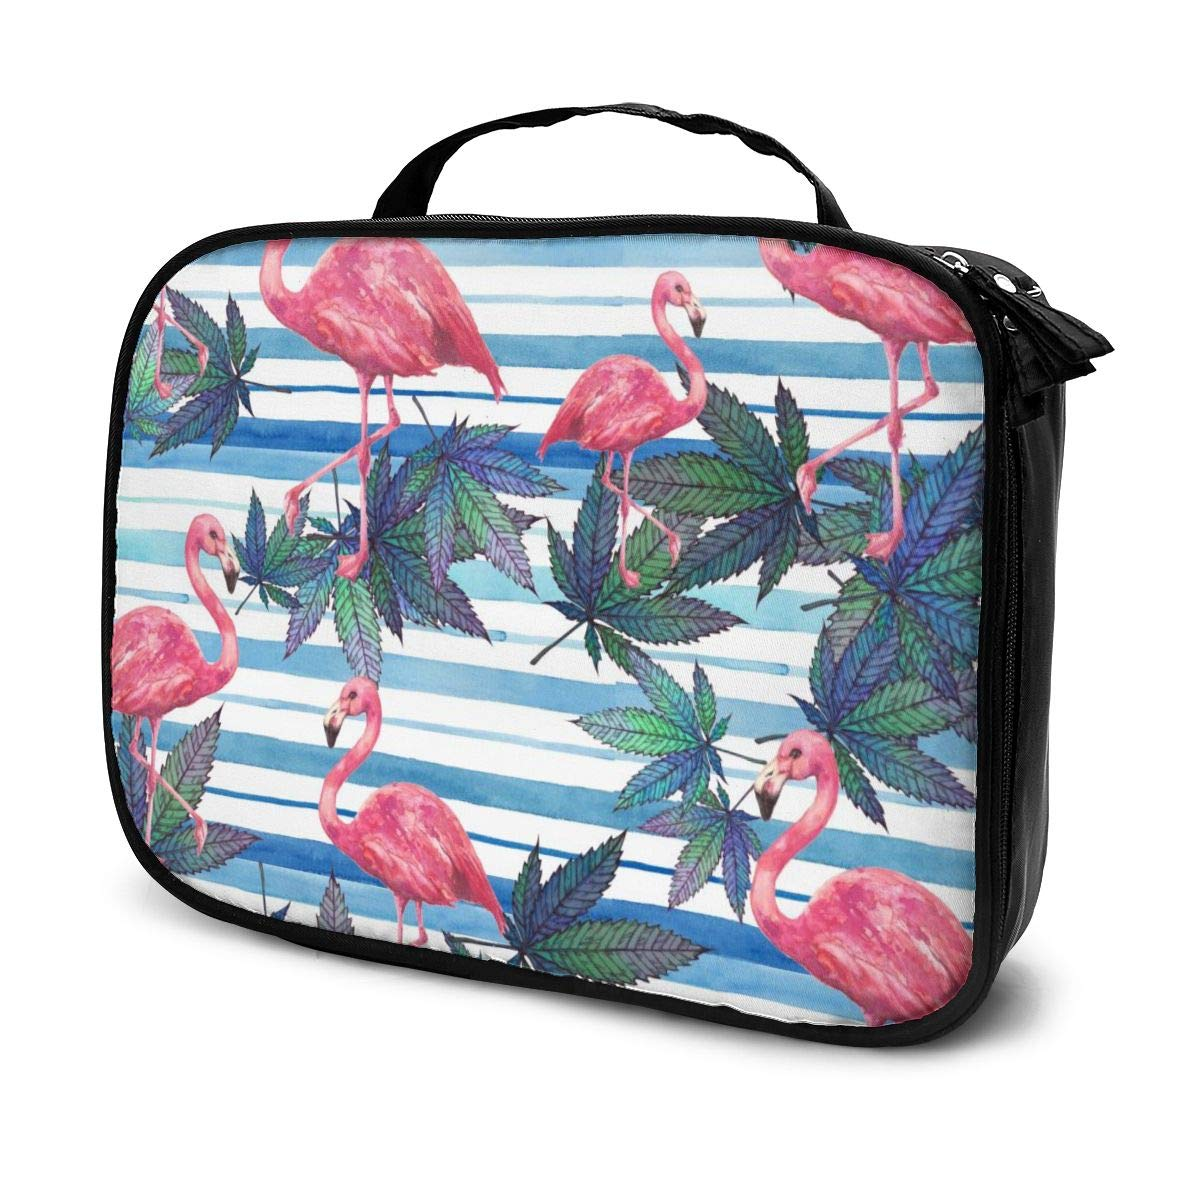 YongColer Lazy Toiletry Bag Handbag, Pink Flamingo and Weed Beach Design Travel Makeup Train Case Pouch Large Capacity Carry On Bag, Portable Luggage Pouch, Makeup Pouch for Women Girls Ladies